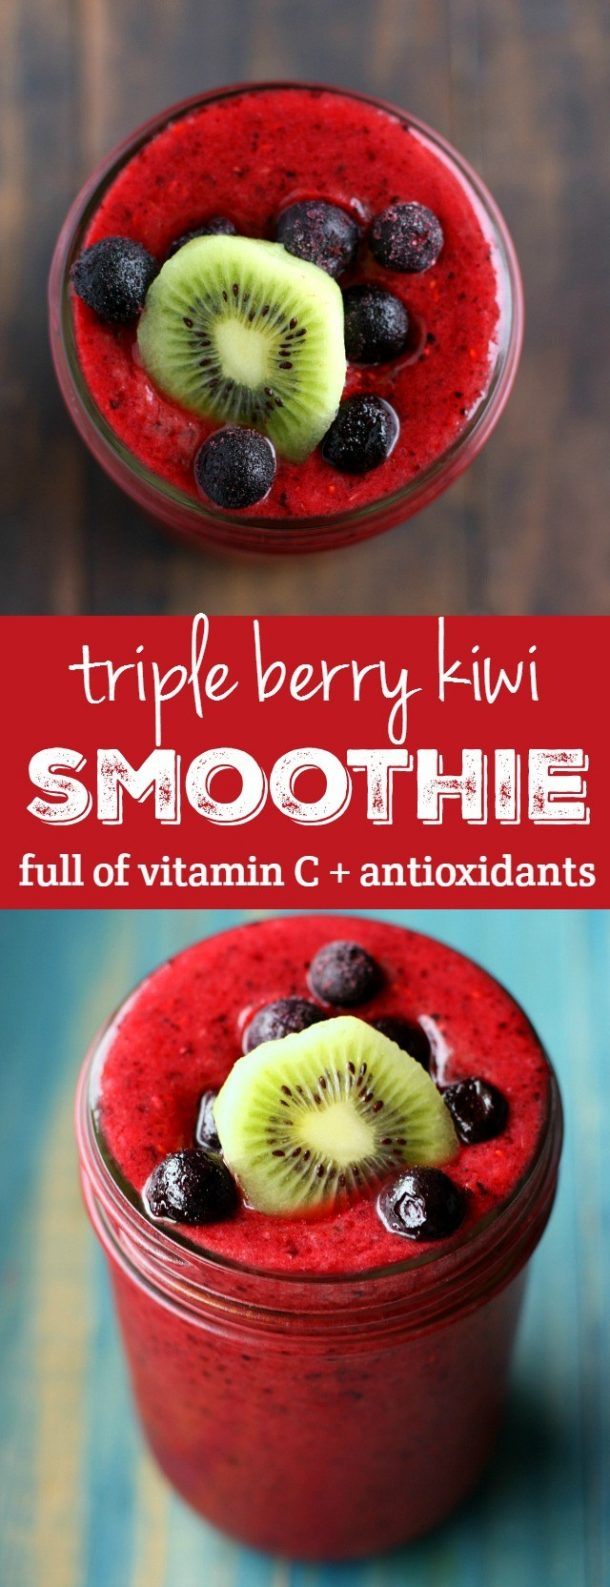 Immunity Boosting Triple Berry Kiwi Smoothie Recipe via The Pretty Bee - Full of Vitamin C and Antioxidants - Healthy Snacks and Treats Recipes